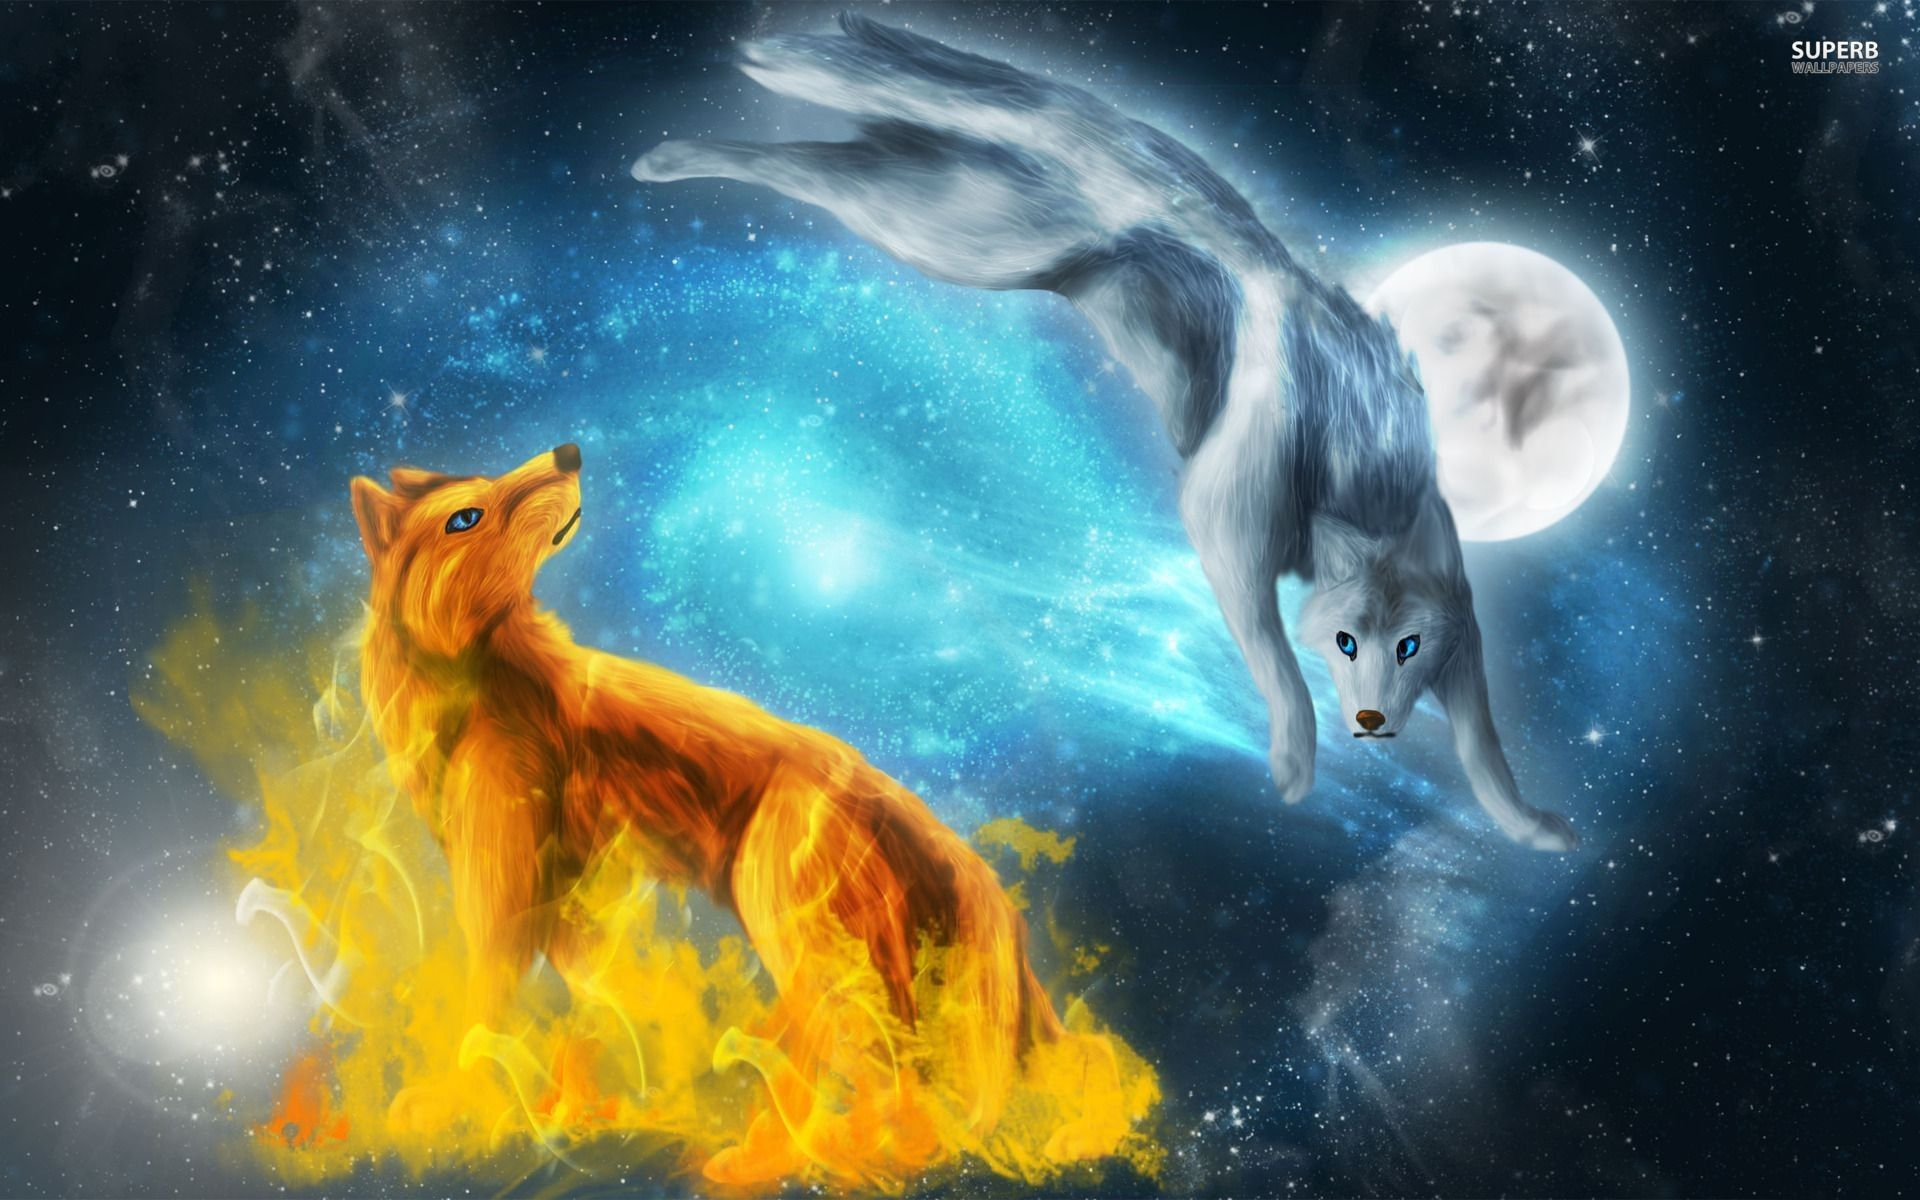 Cute Cartoon Wolf Wallpapers Top Free Cute Cartoon Wolf Backgrounds Wallpaperaccess